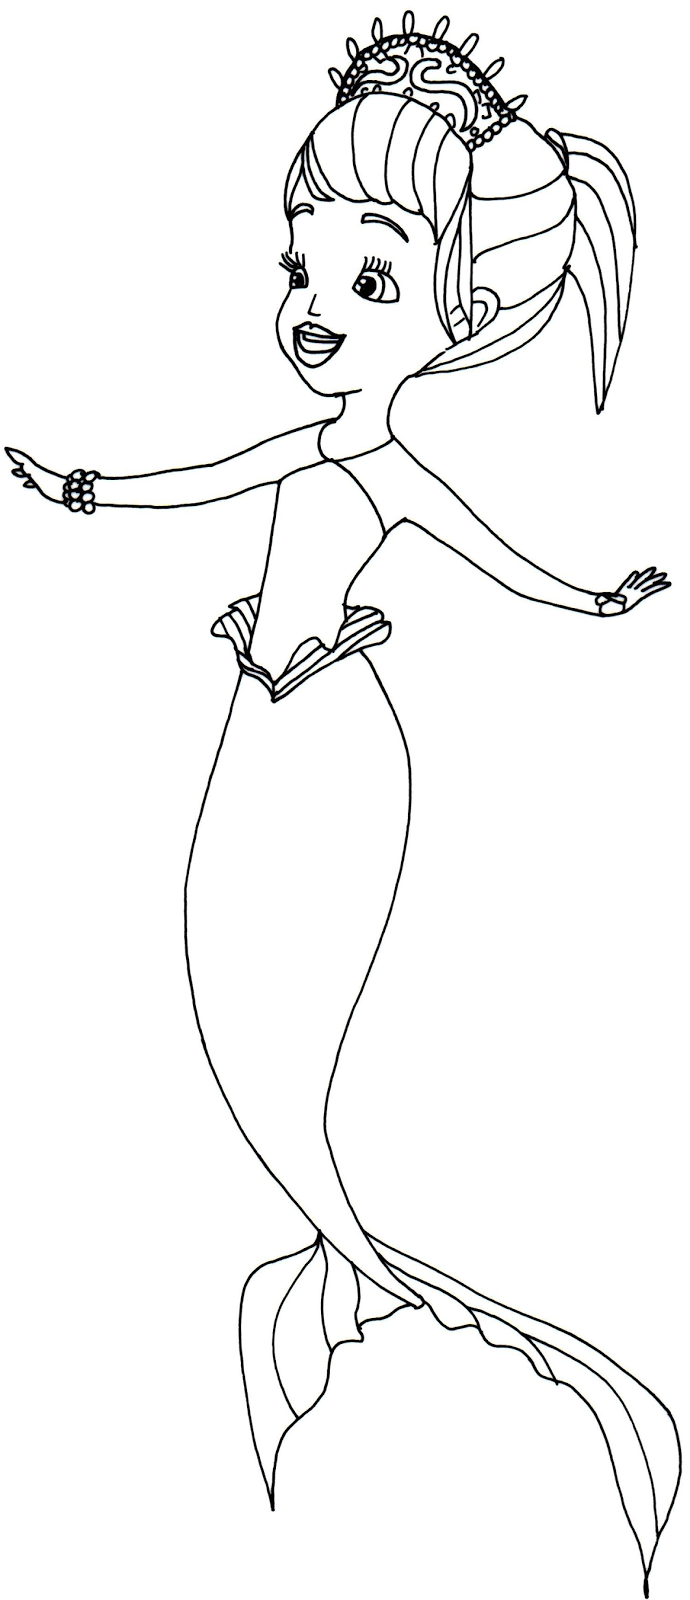 Oona Sofia The First Coloring Page Mermaid Coloring Pages Mermaid Coloring Princess Coloring Pages